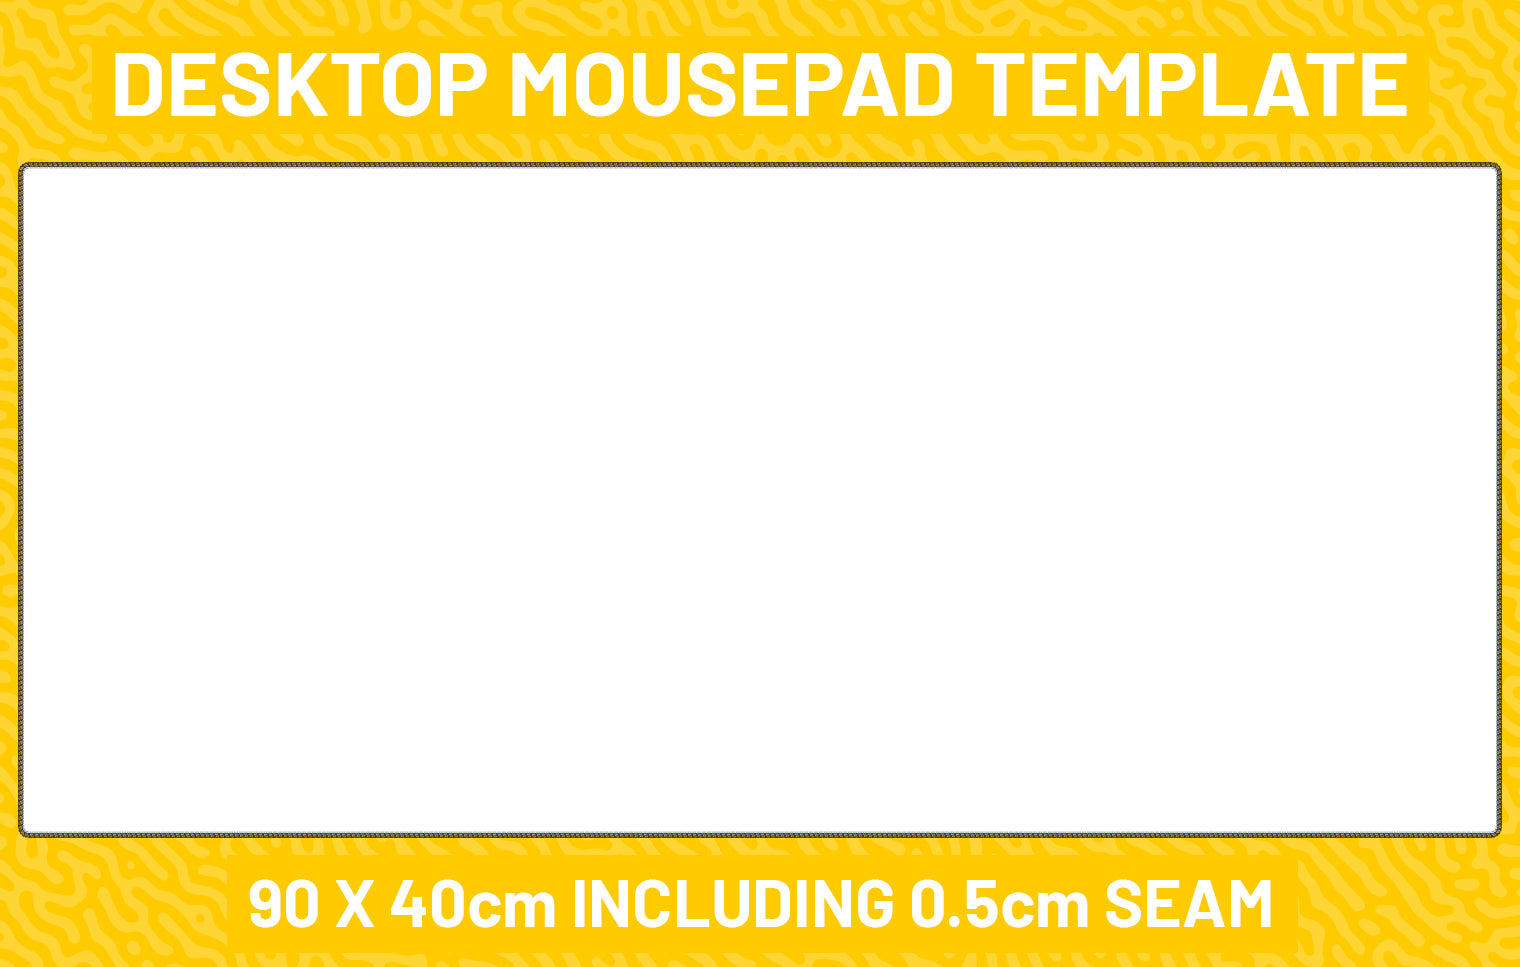 Desktop Mousepad Template